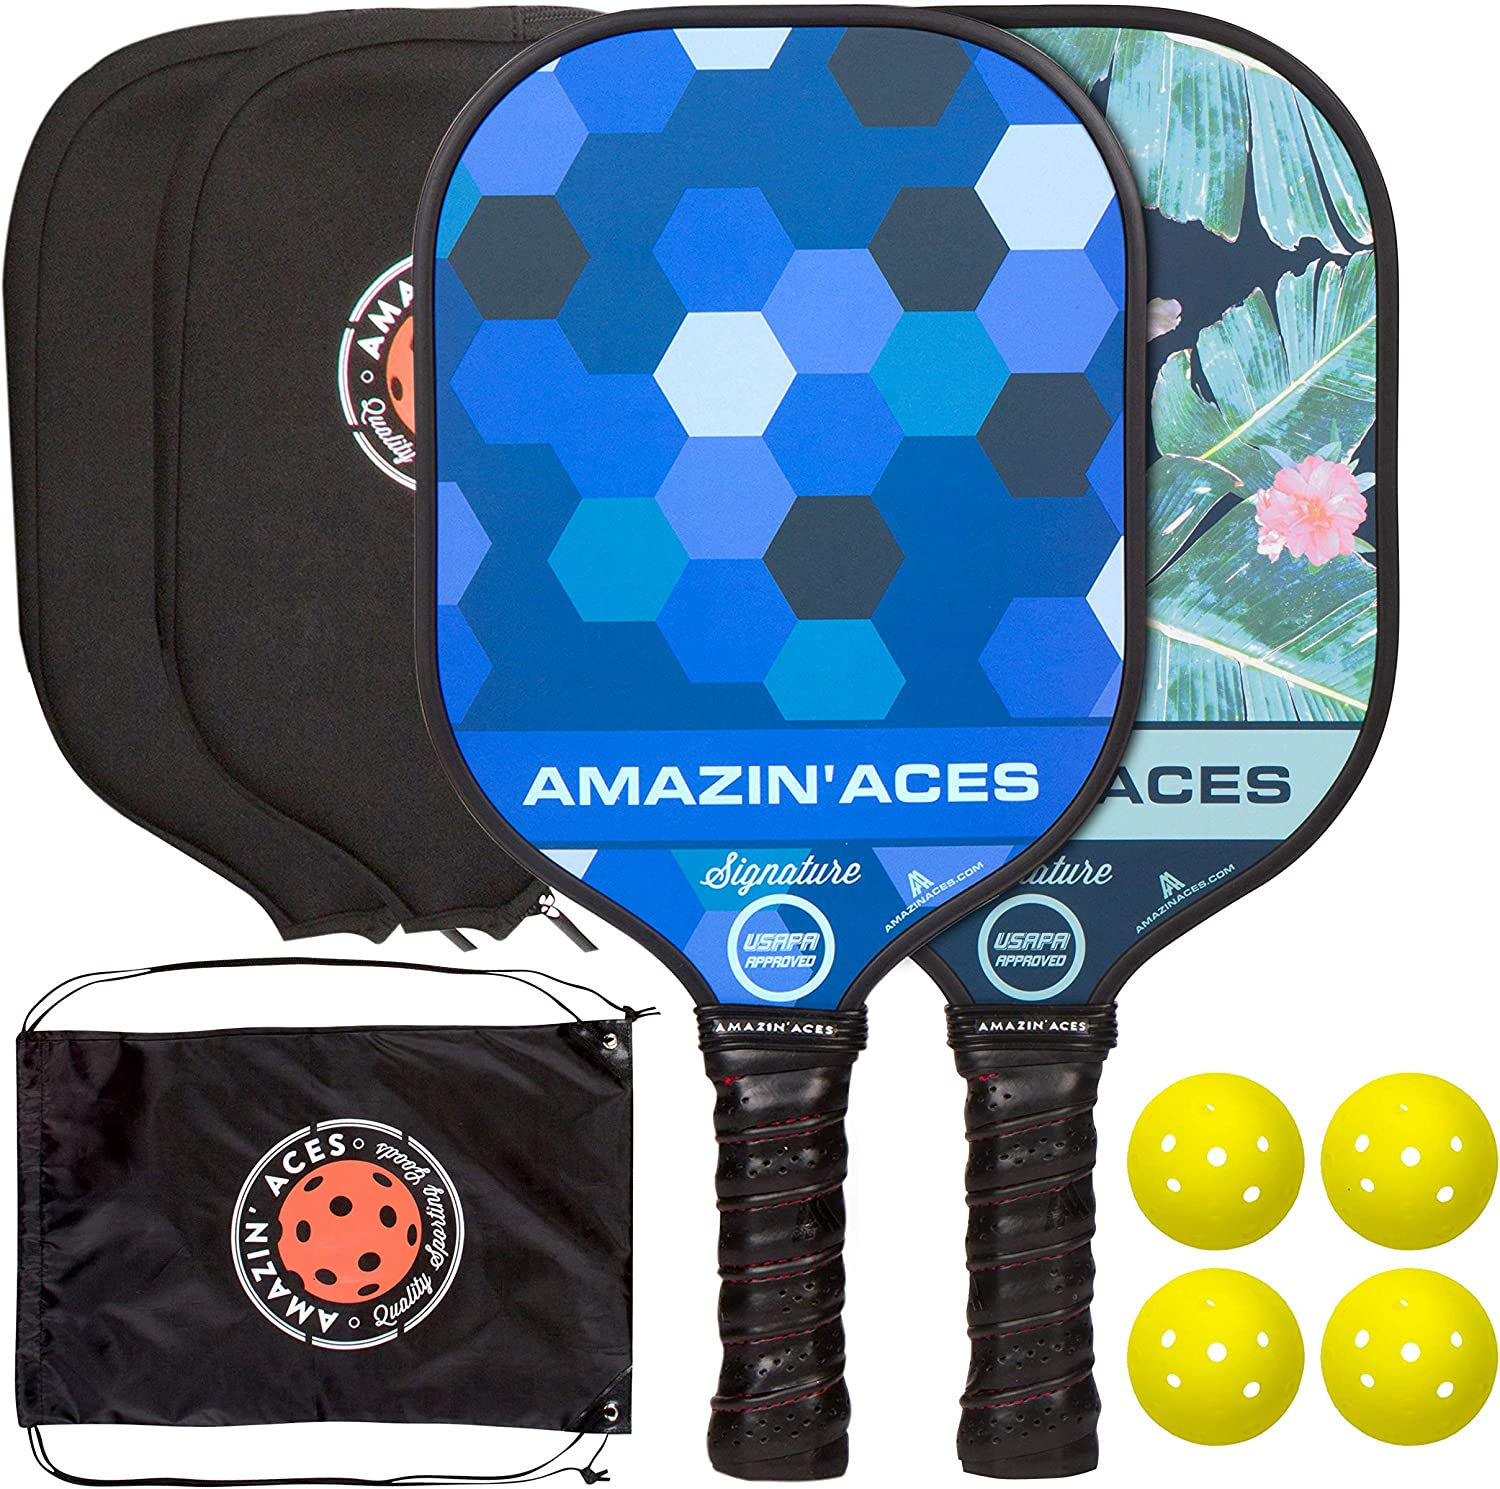 Amazin Aces Signature Pickleball Paddle | USAPA Approved | Graphite Face & Polymer Core | Premium Grip | Paddles Available as Single or Set | Set ...